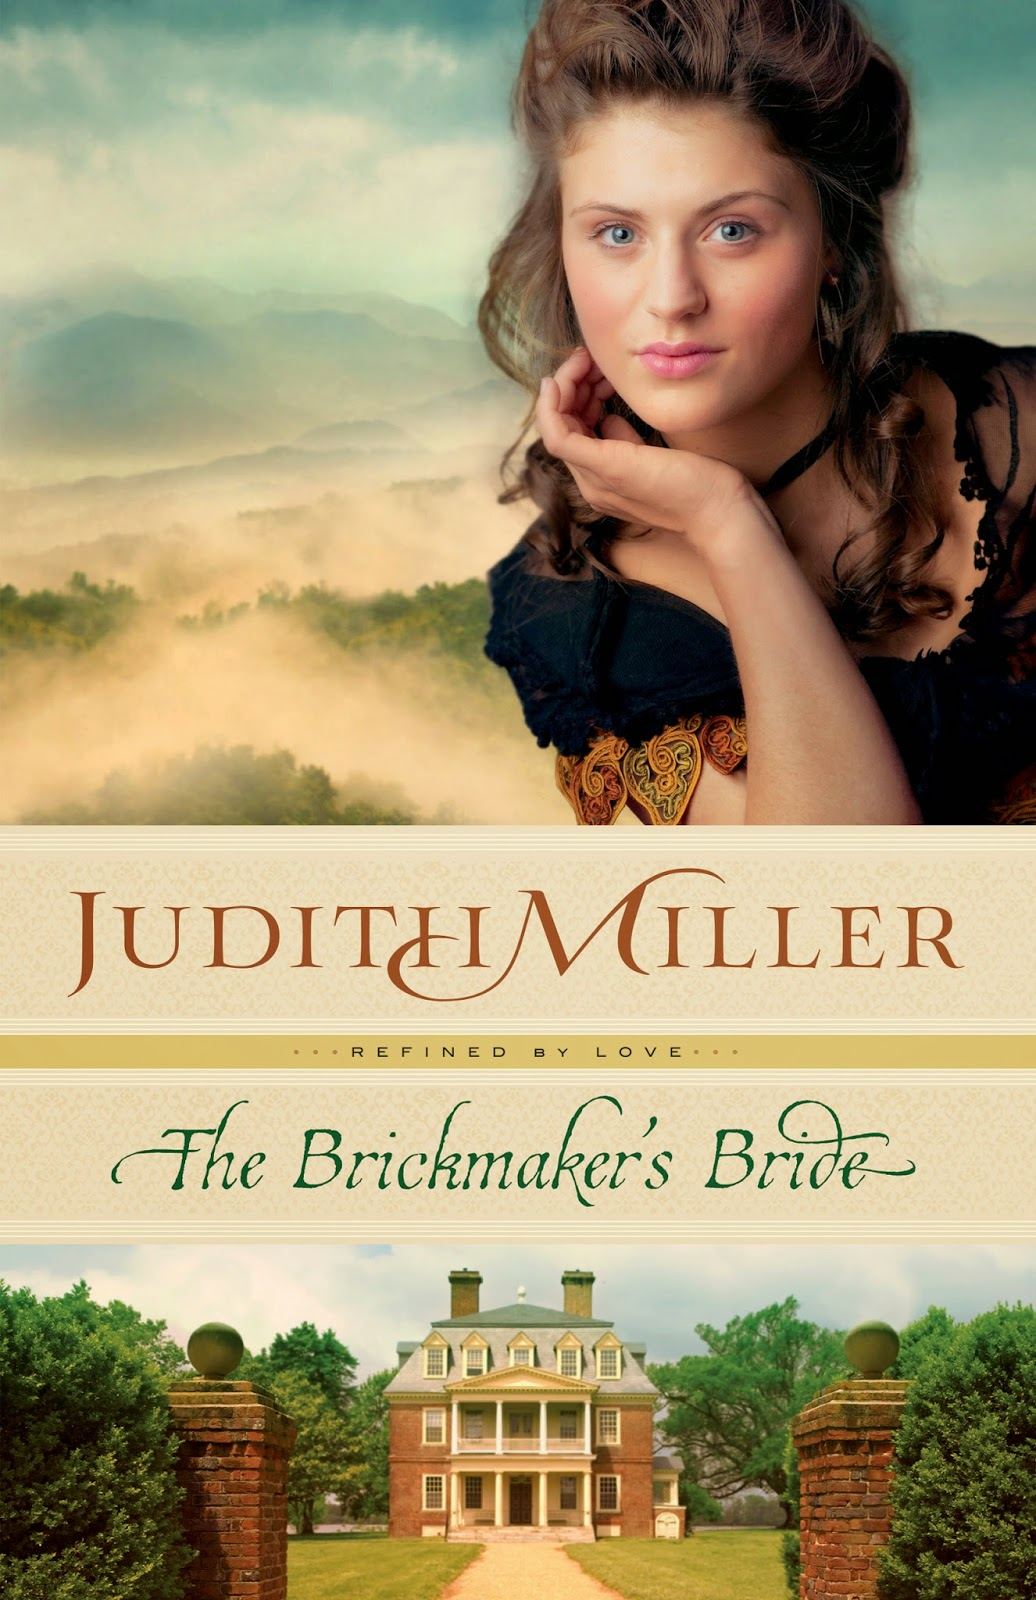 Book review of The Brickmaker's Bride by Judith Miller (Bethany House) by papertapepins